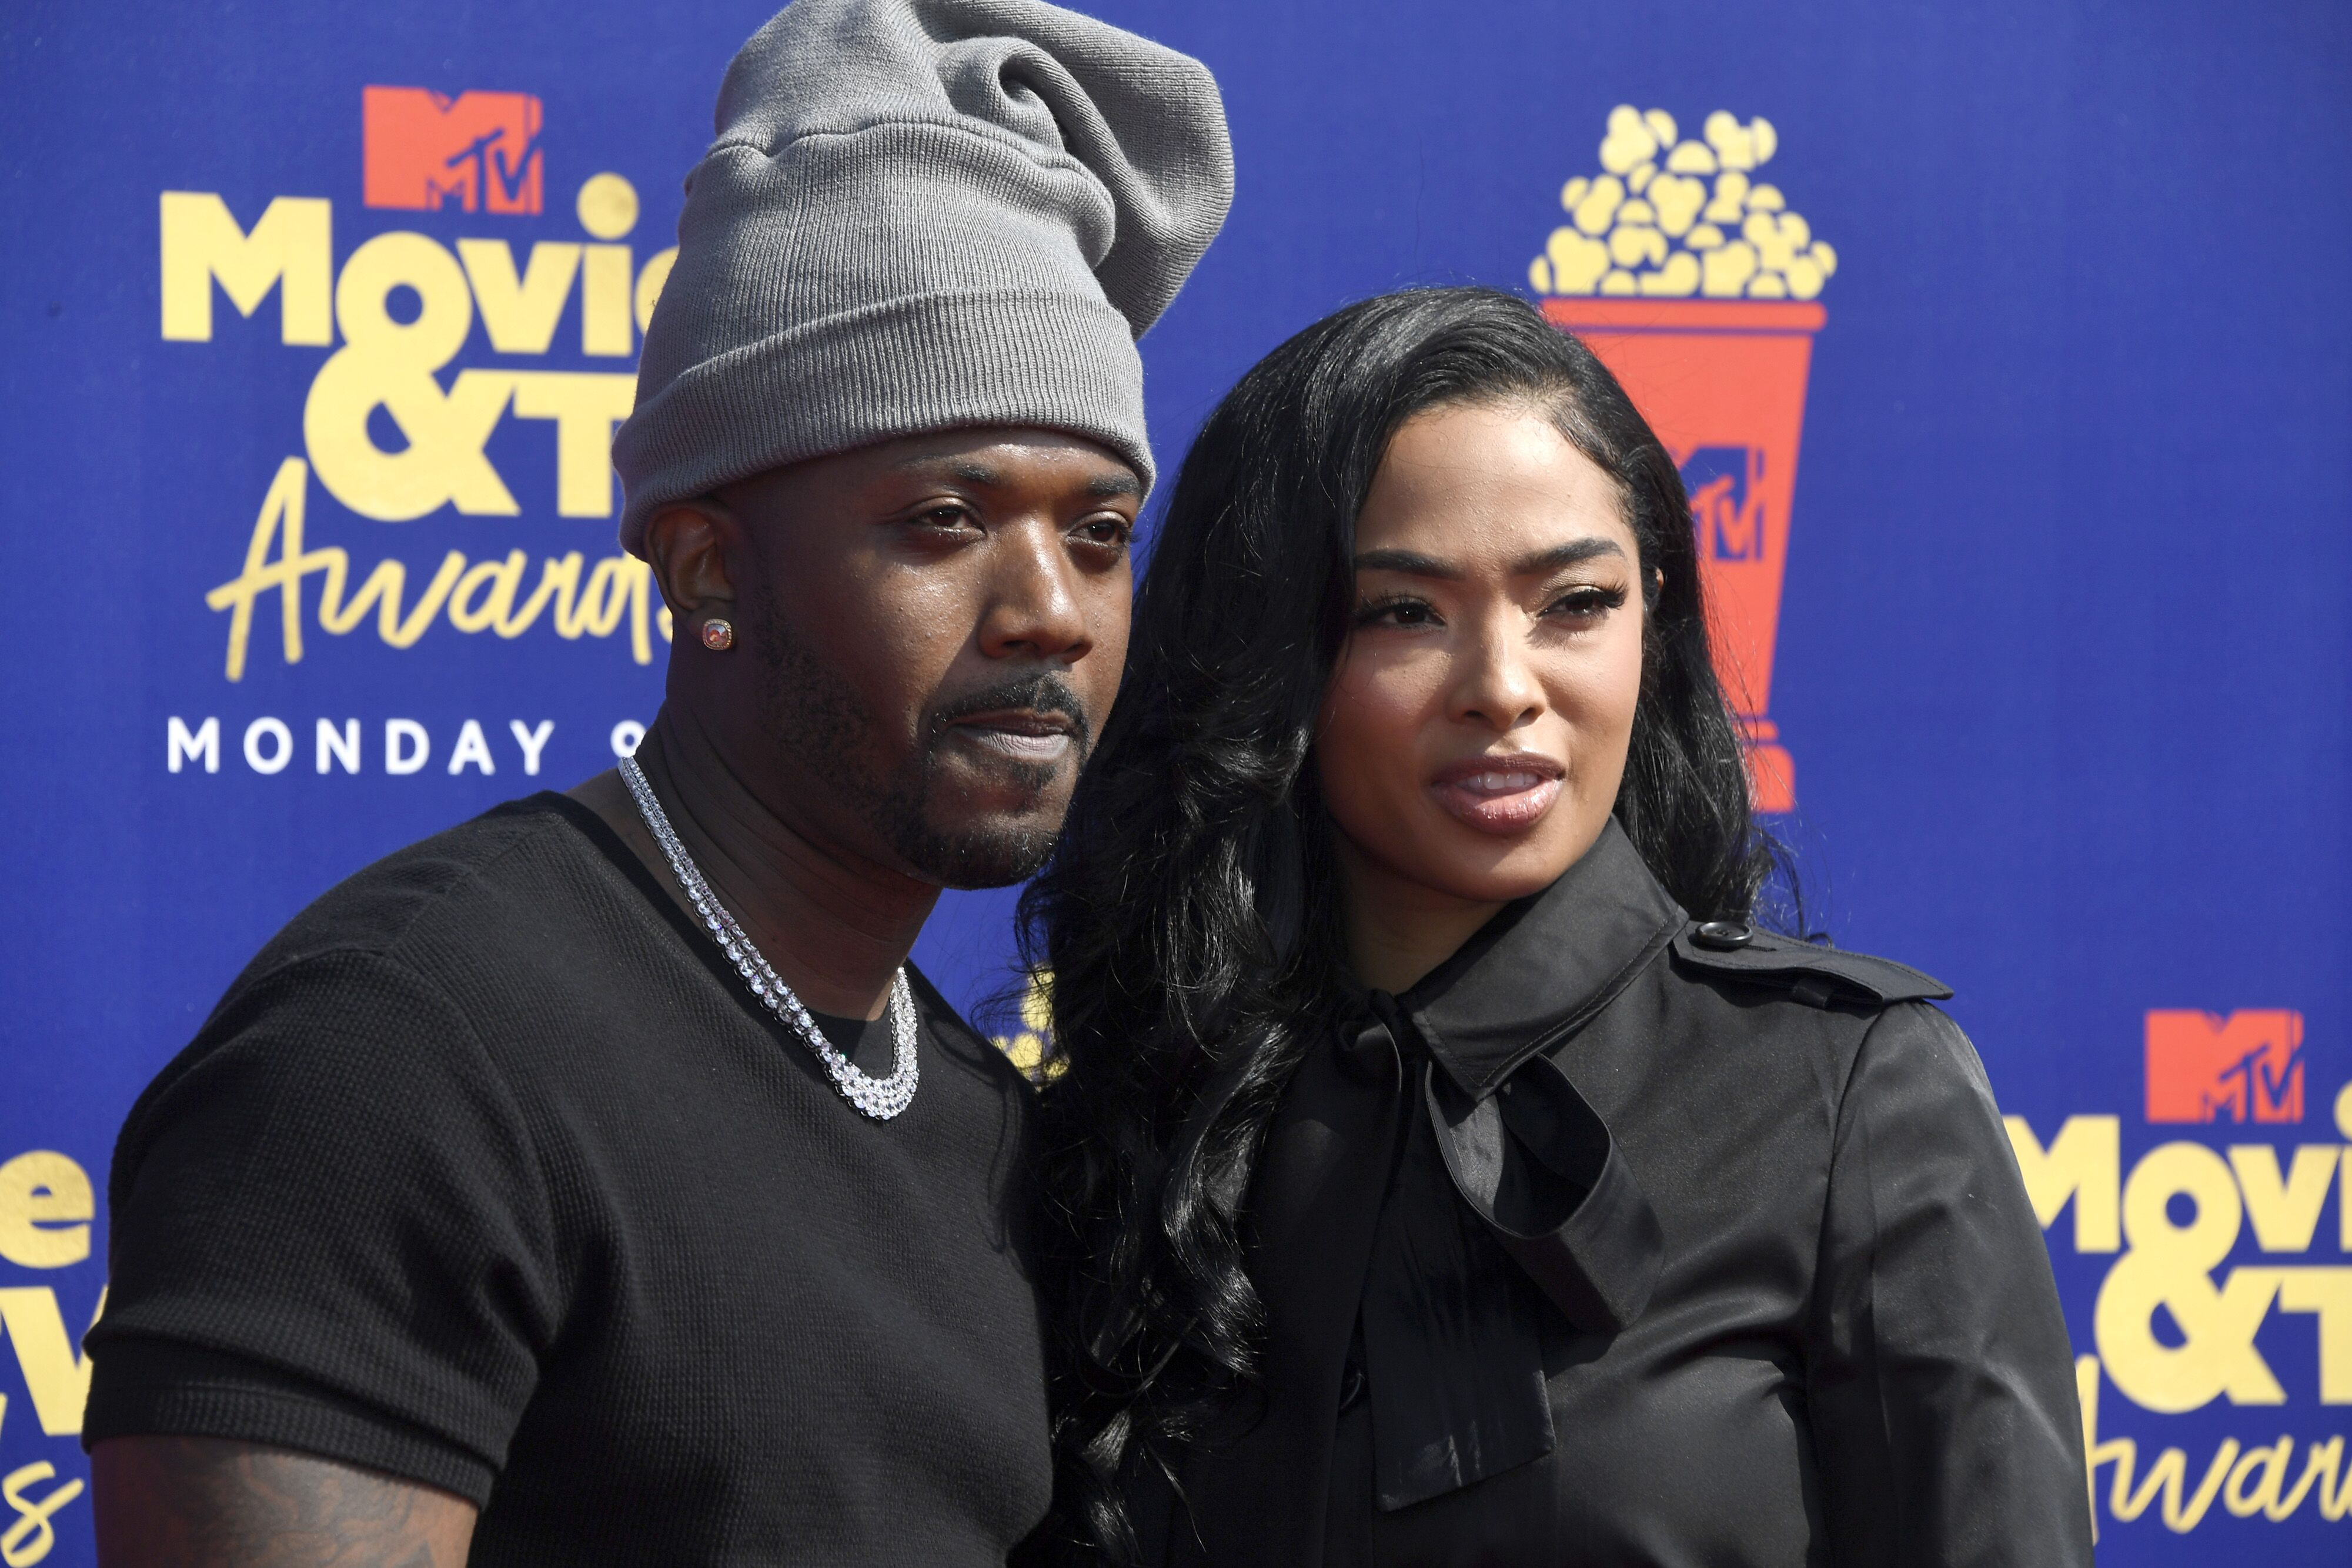 Ray J and Princess Love attend the 2019 MTV Movie and TV Awards at Barker Hangar on June 15, 2019. | Source: Getty Images